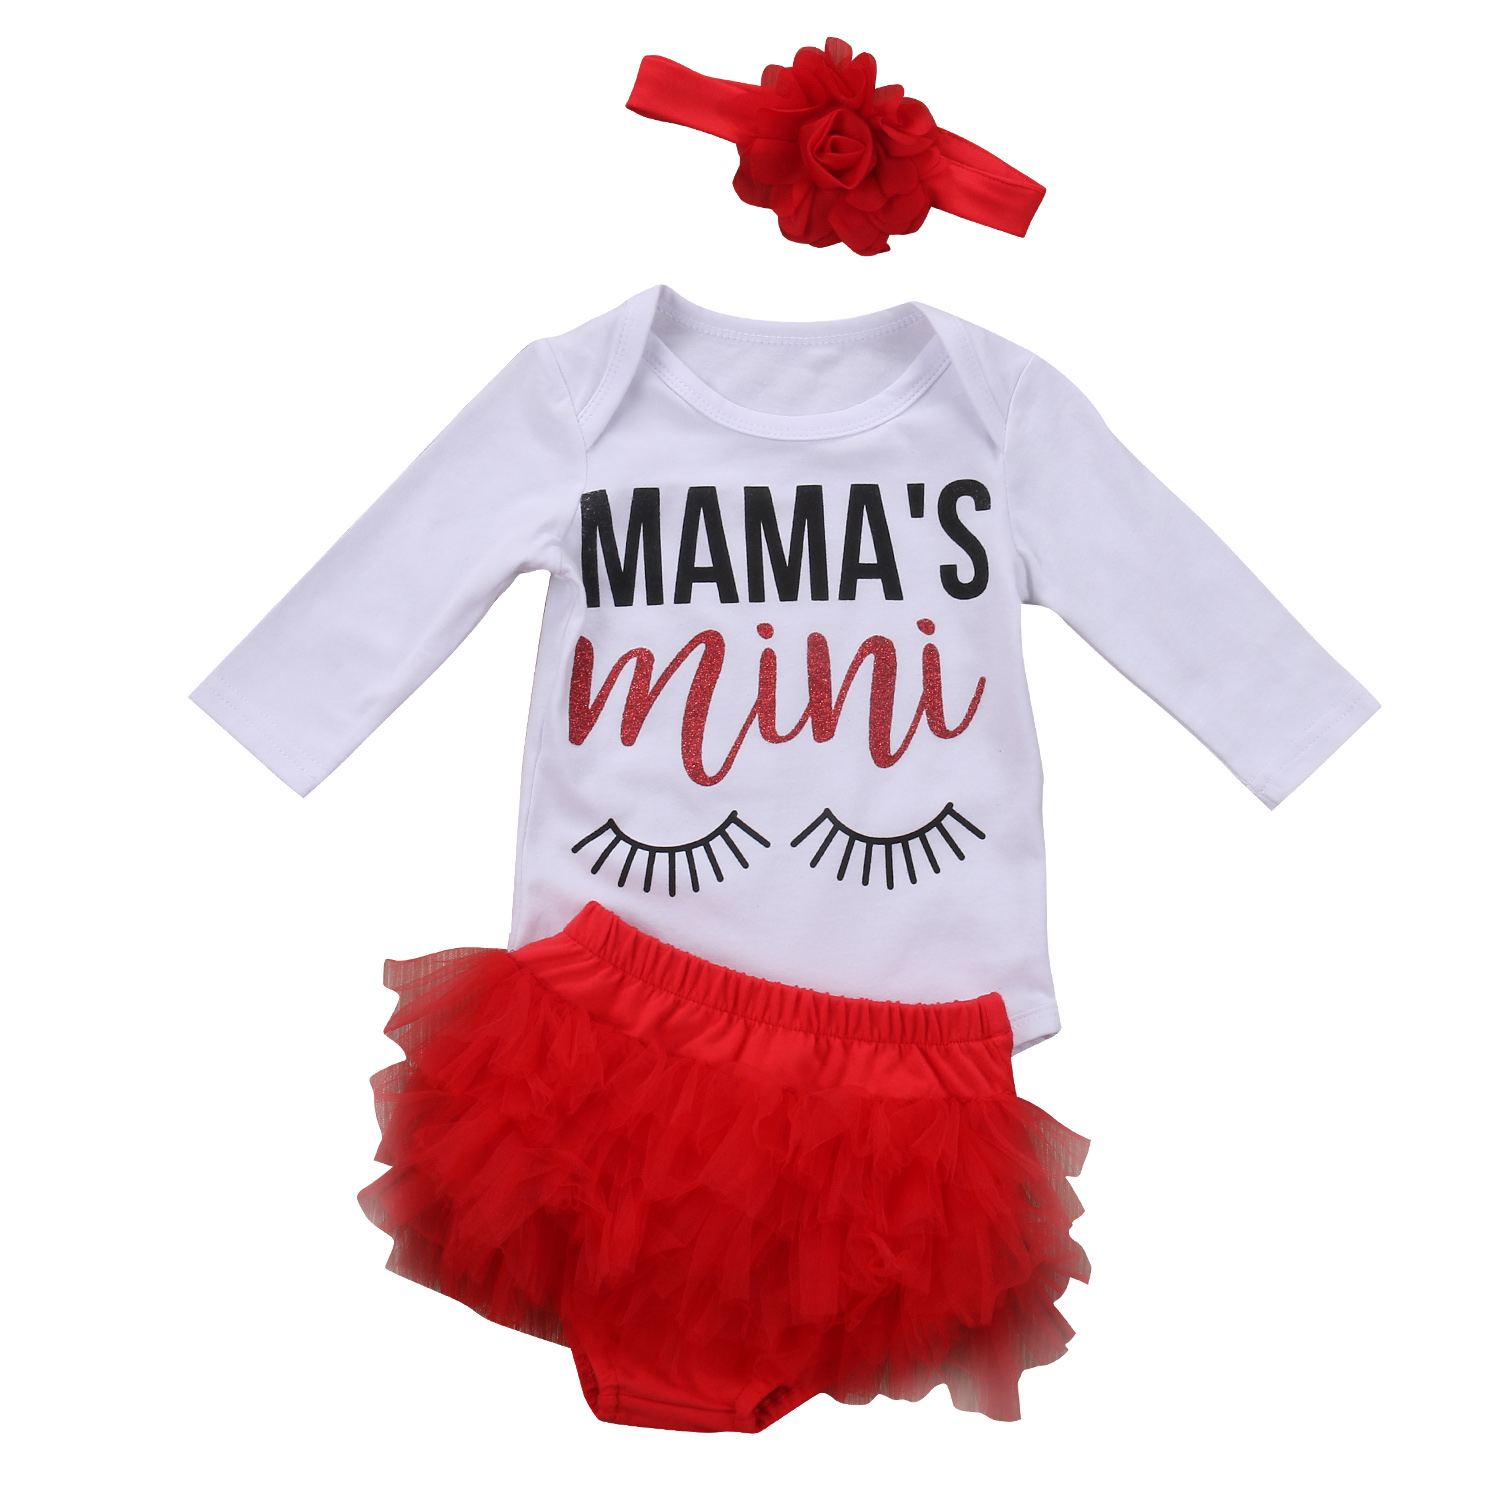 3PCS Cute Newborn Baby Girl Clothes Cotton Long Sleeve Romper Lace Tutu Shorts Skorts Headdress Outfits Baby Clothing Set